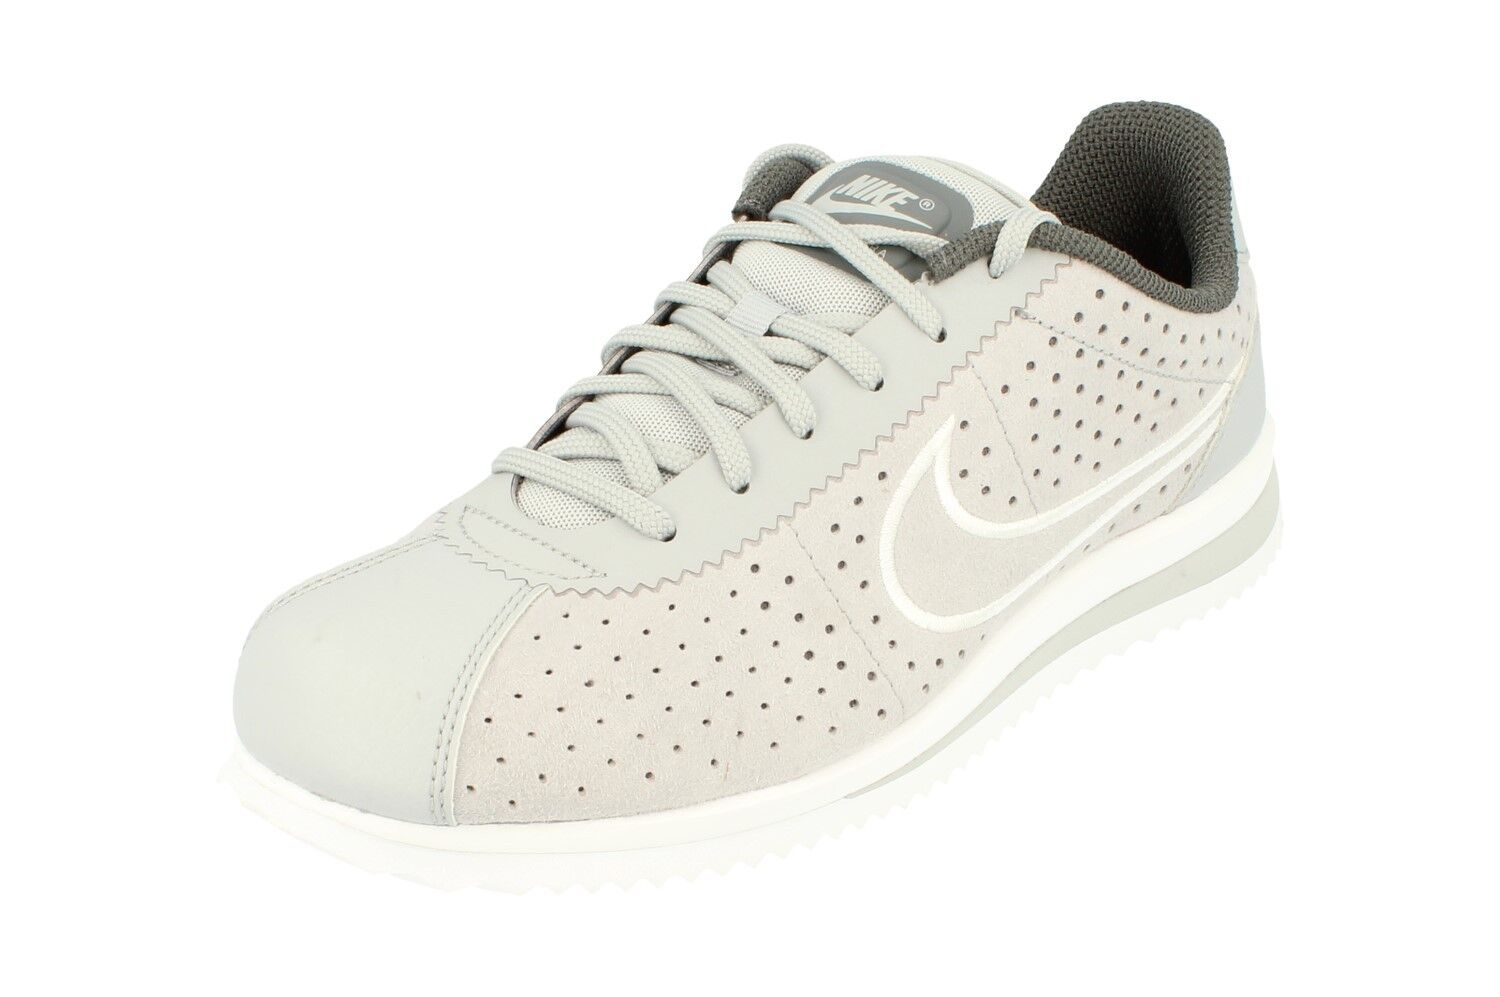 Nike Cortez Ultra Moire 2 Mens Running 918207 Trainers 918207 Running Sneakers Shoes 002 561c72